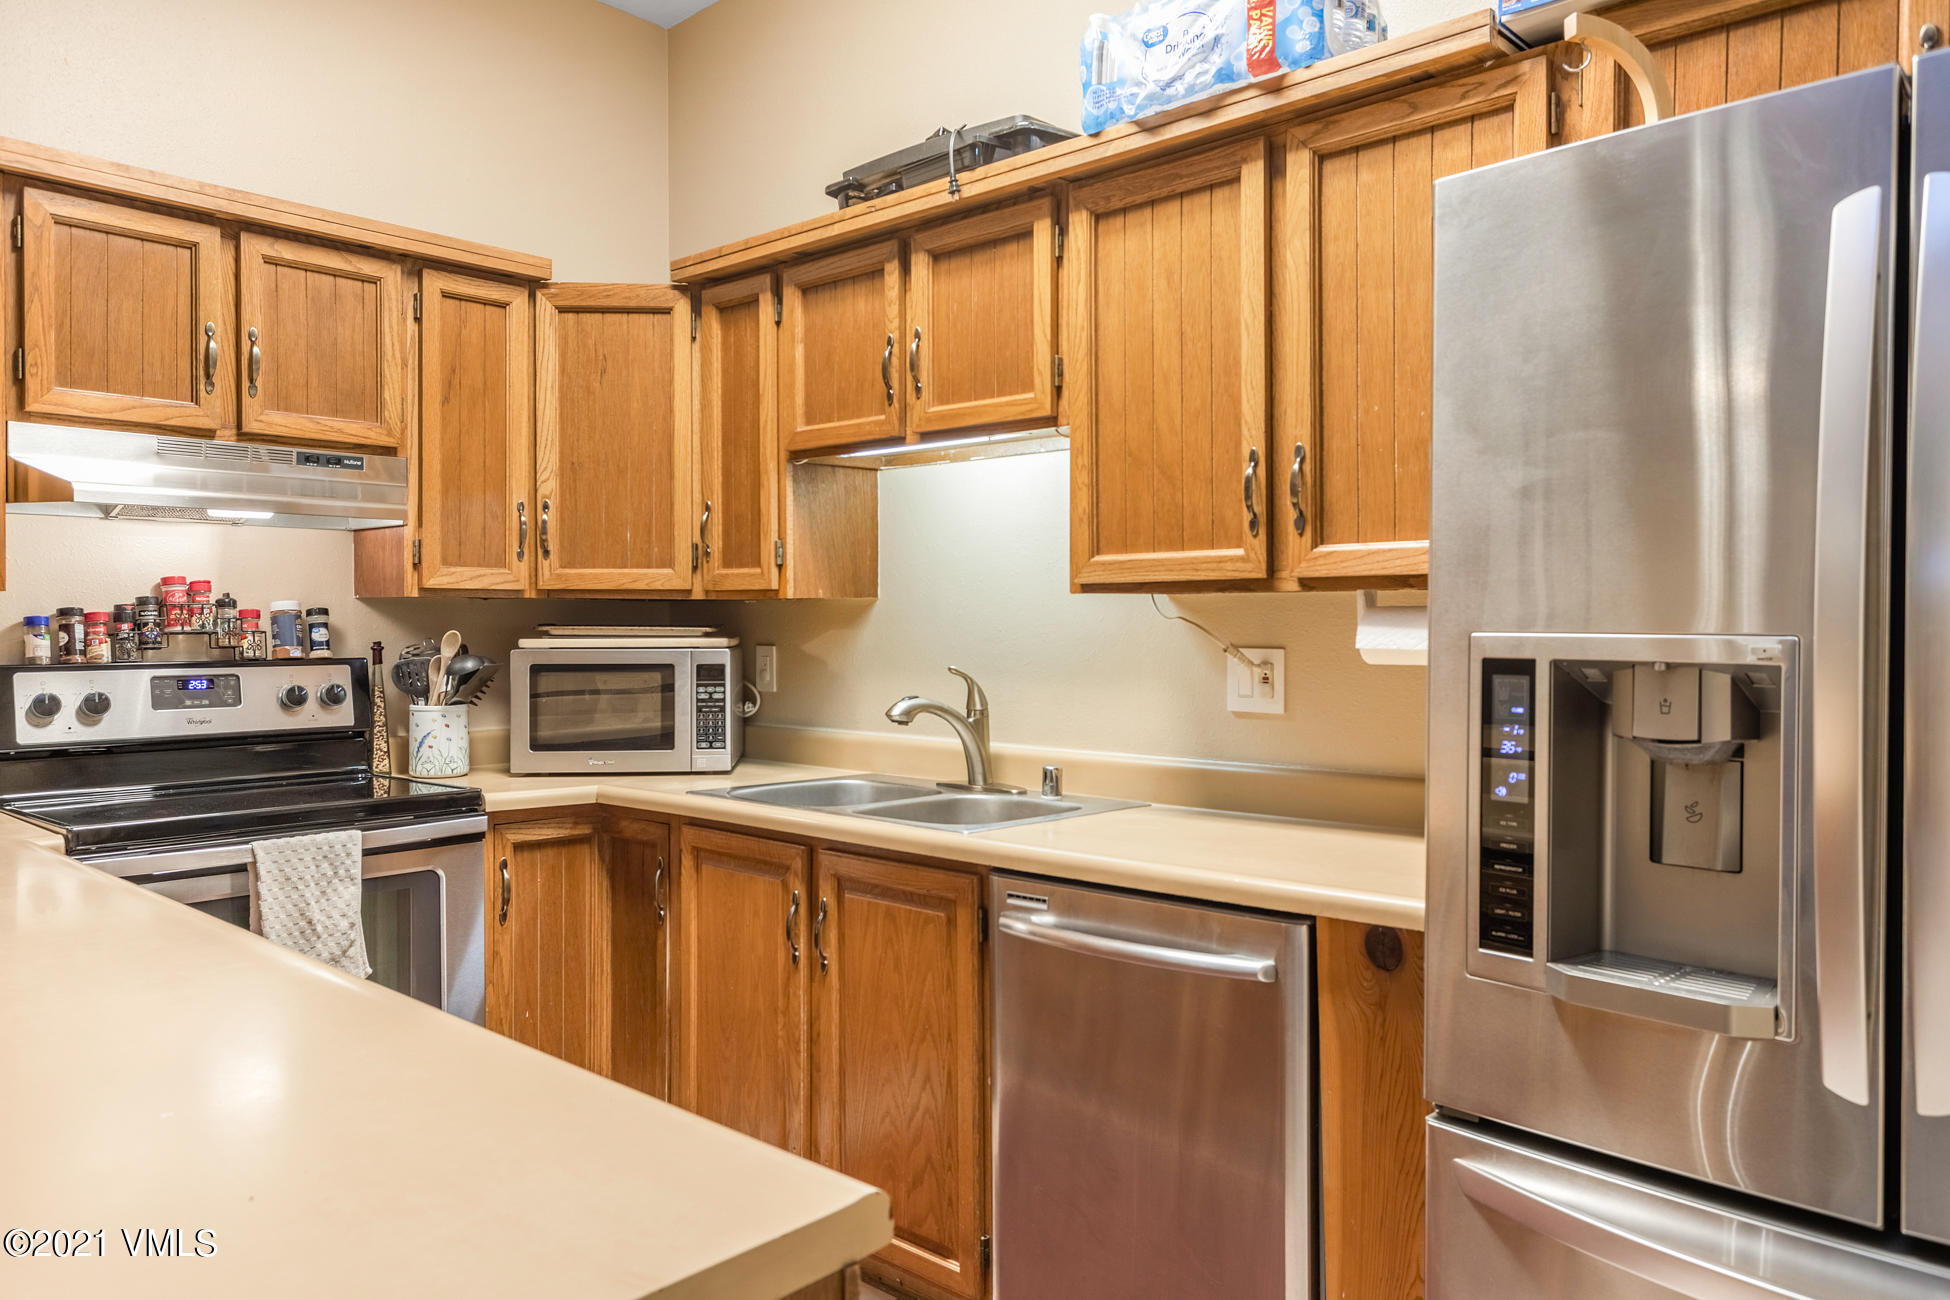 Beautiful ground floor 2 bedroom 2 full bath Par Six nestled in the quiet community of Eagle-Vail. Close community parks, Tennis, Golf, hiking trails and World class skiing. Will not last long!!!